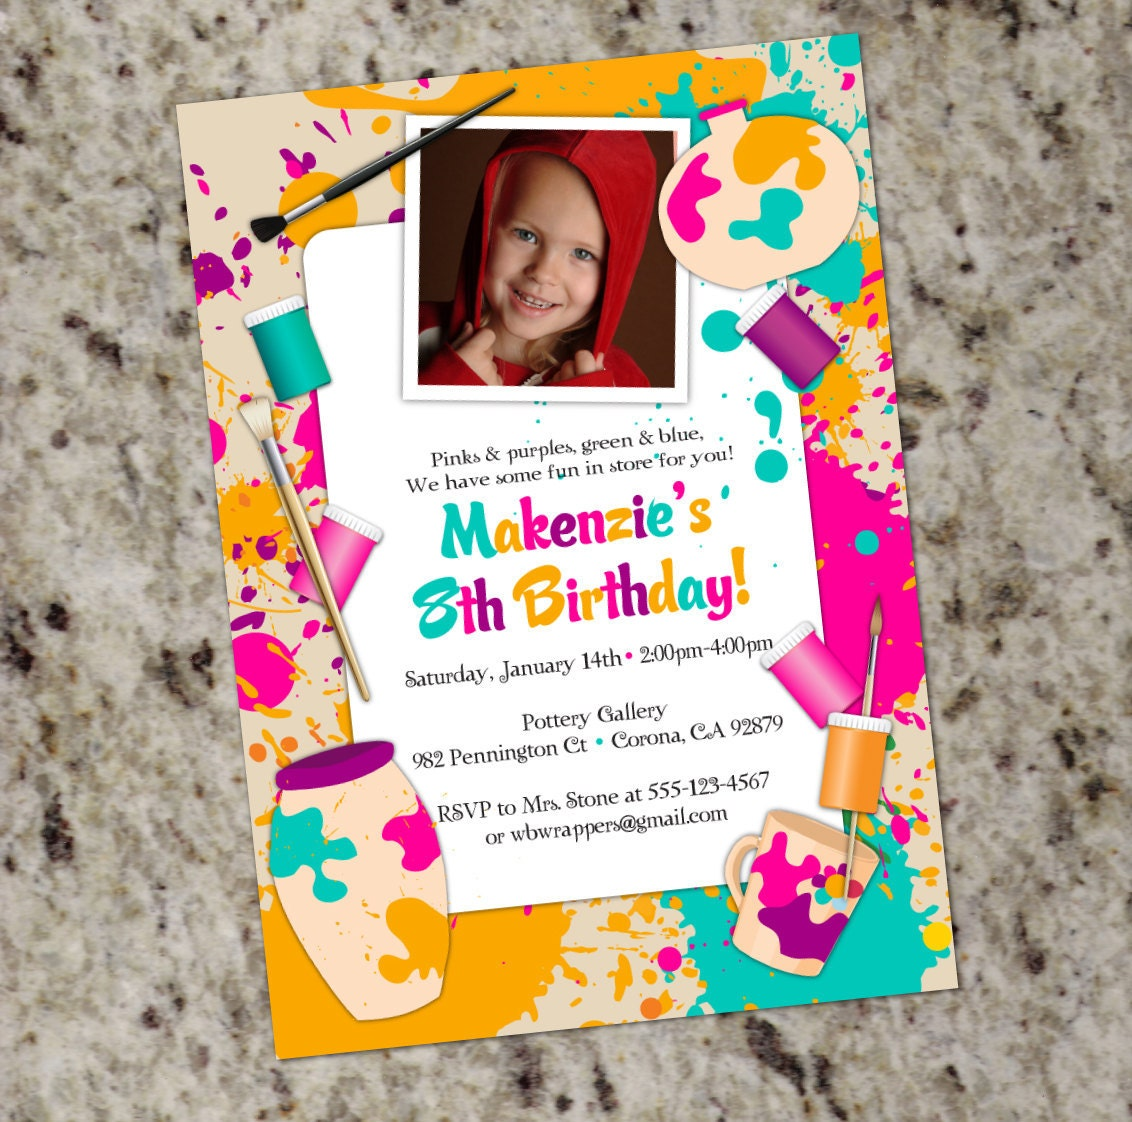 Pottery Painting Birthday Party Invitations was perfect invitation ideas